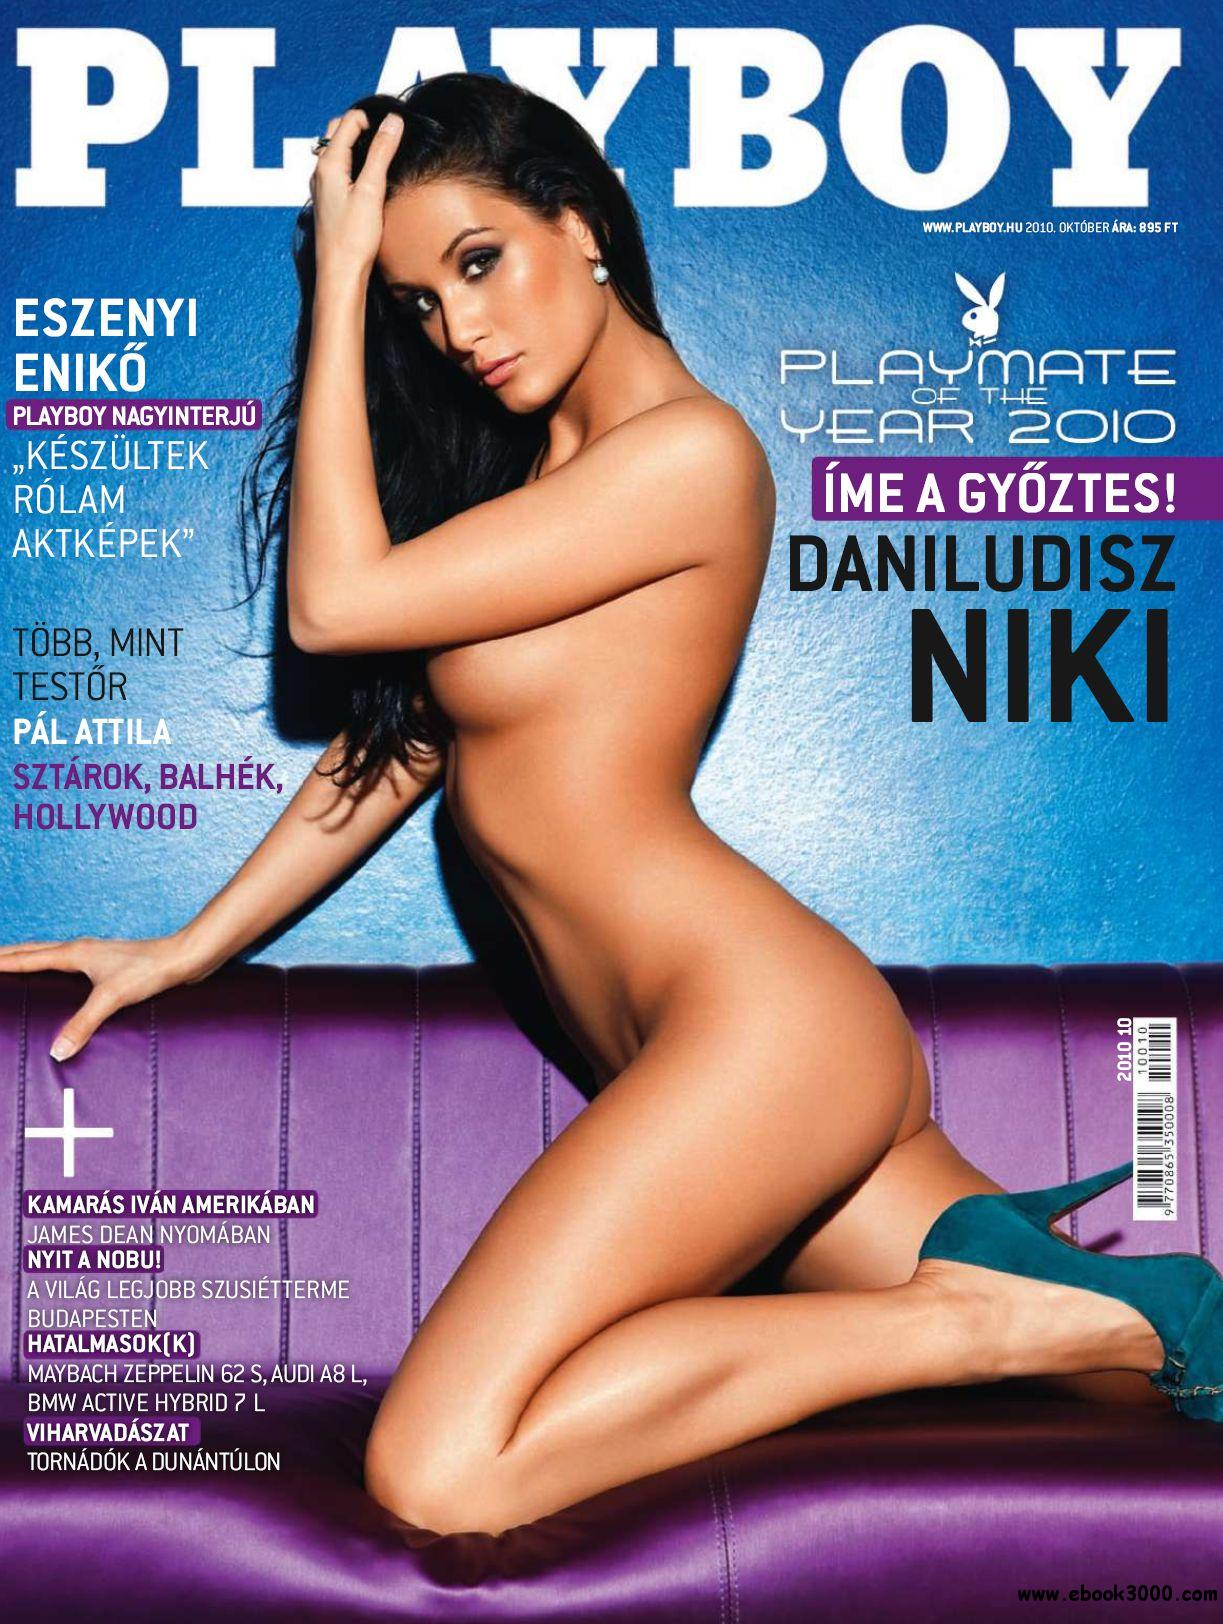 Playboy Hungary - October 2010 free download